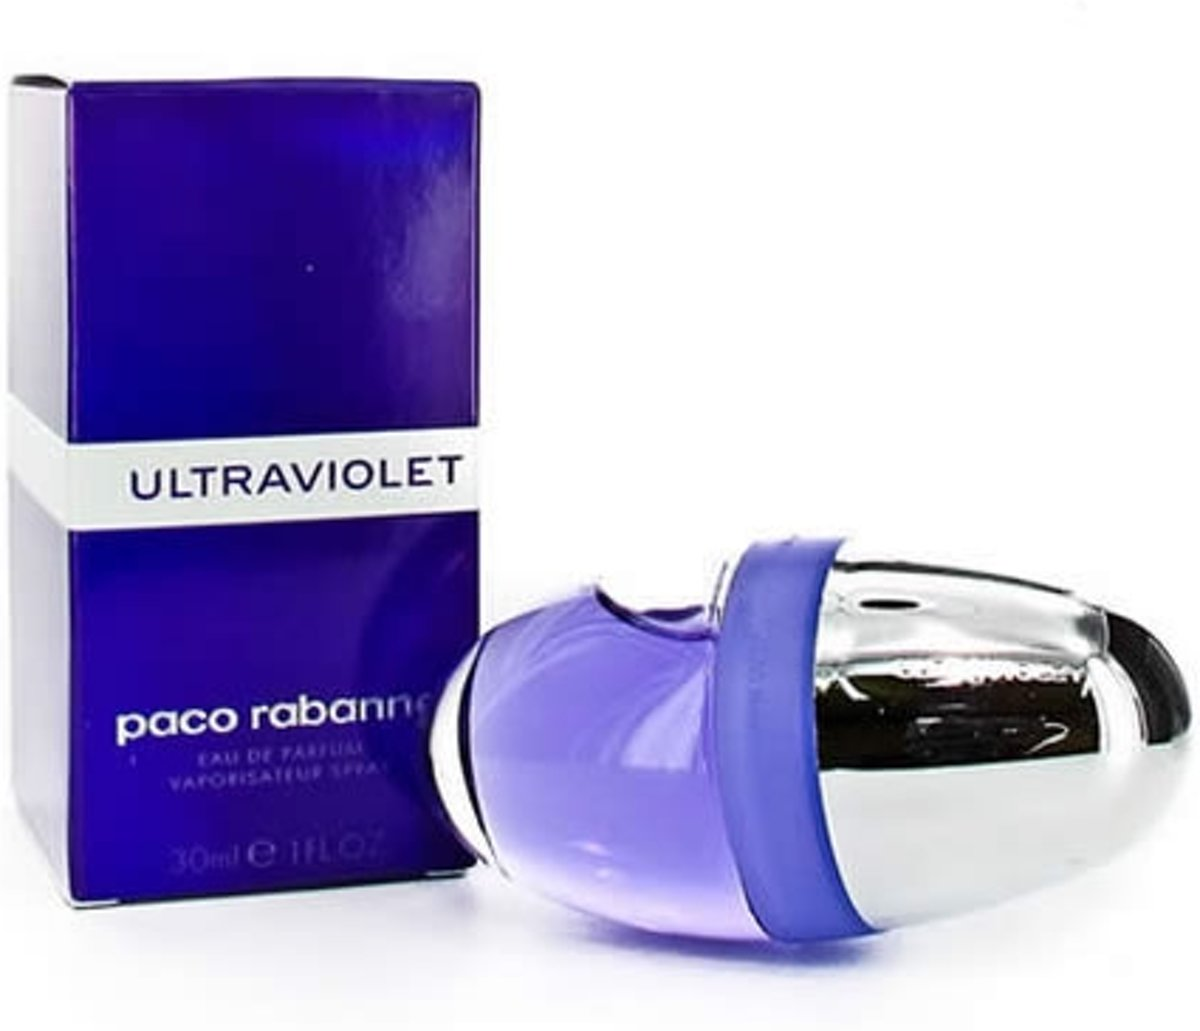 MULTI BUNDEL 4 stuks Paco Rabanne Ultraviolet Eau De Perfume Spray 30ml